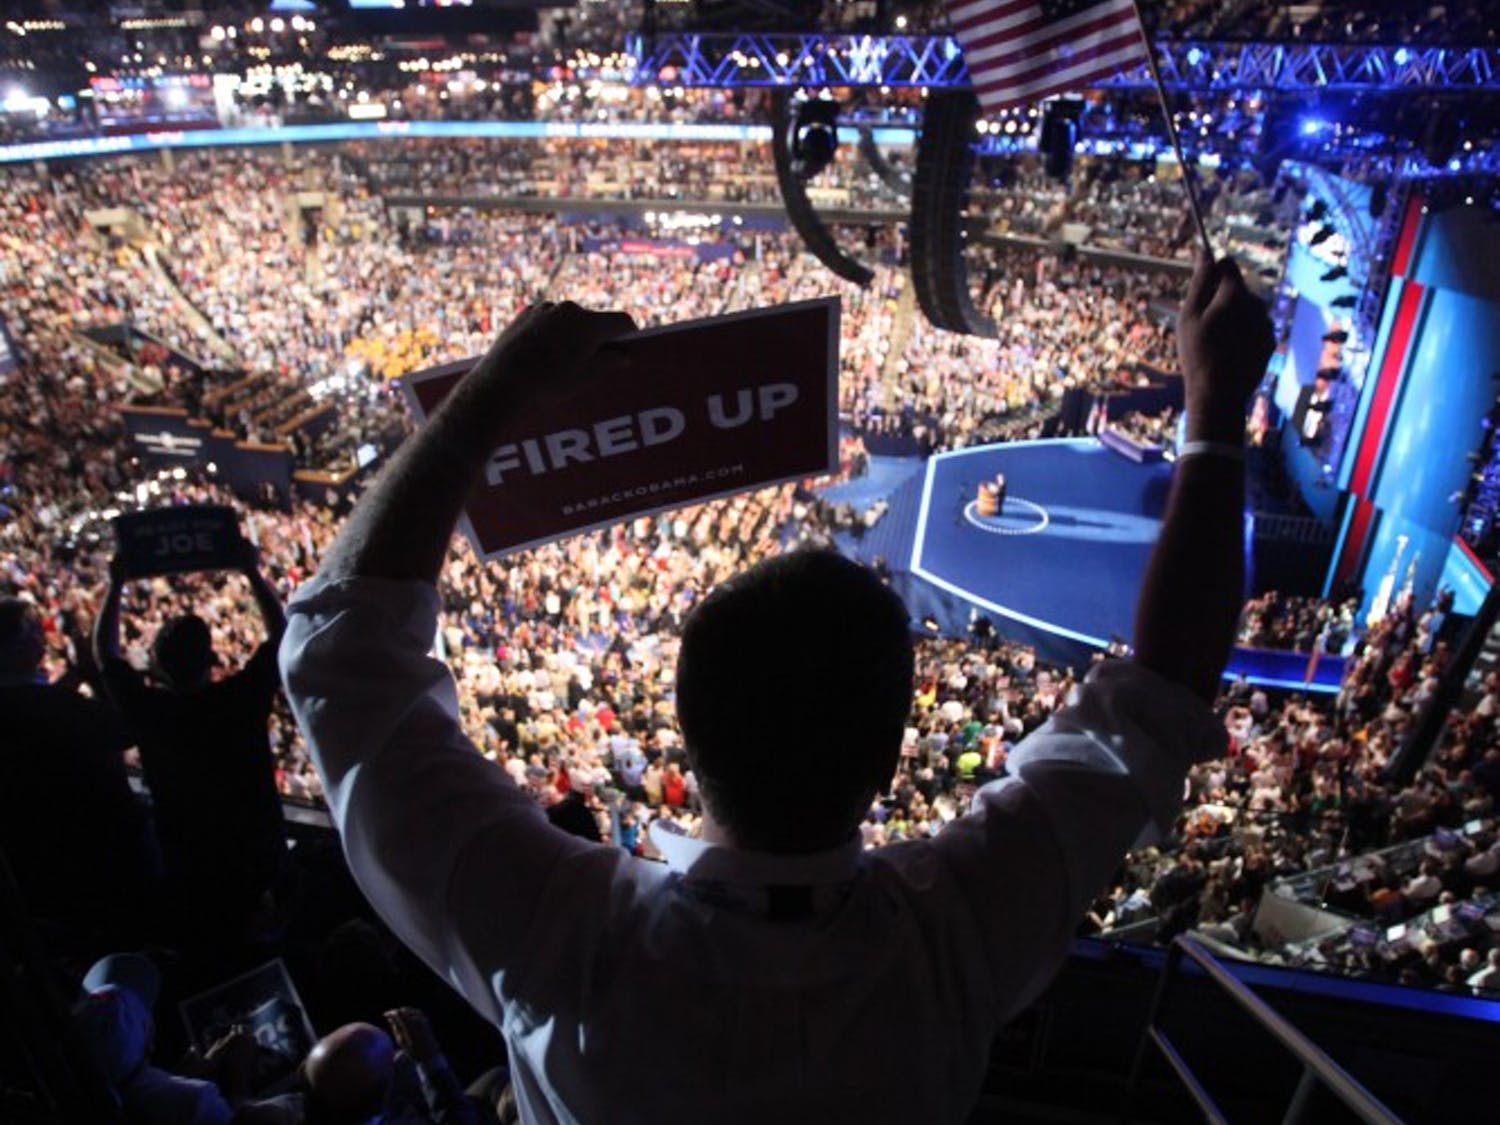 Spectators in Charlotte's Time Warner Cable Arena awaits President Barack Obama's speech accepting his nomination for re-election.